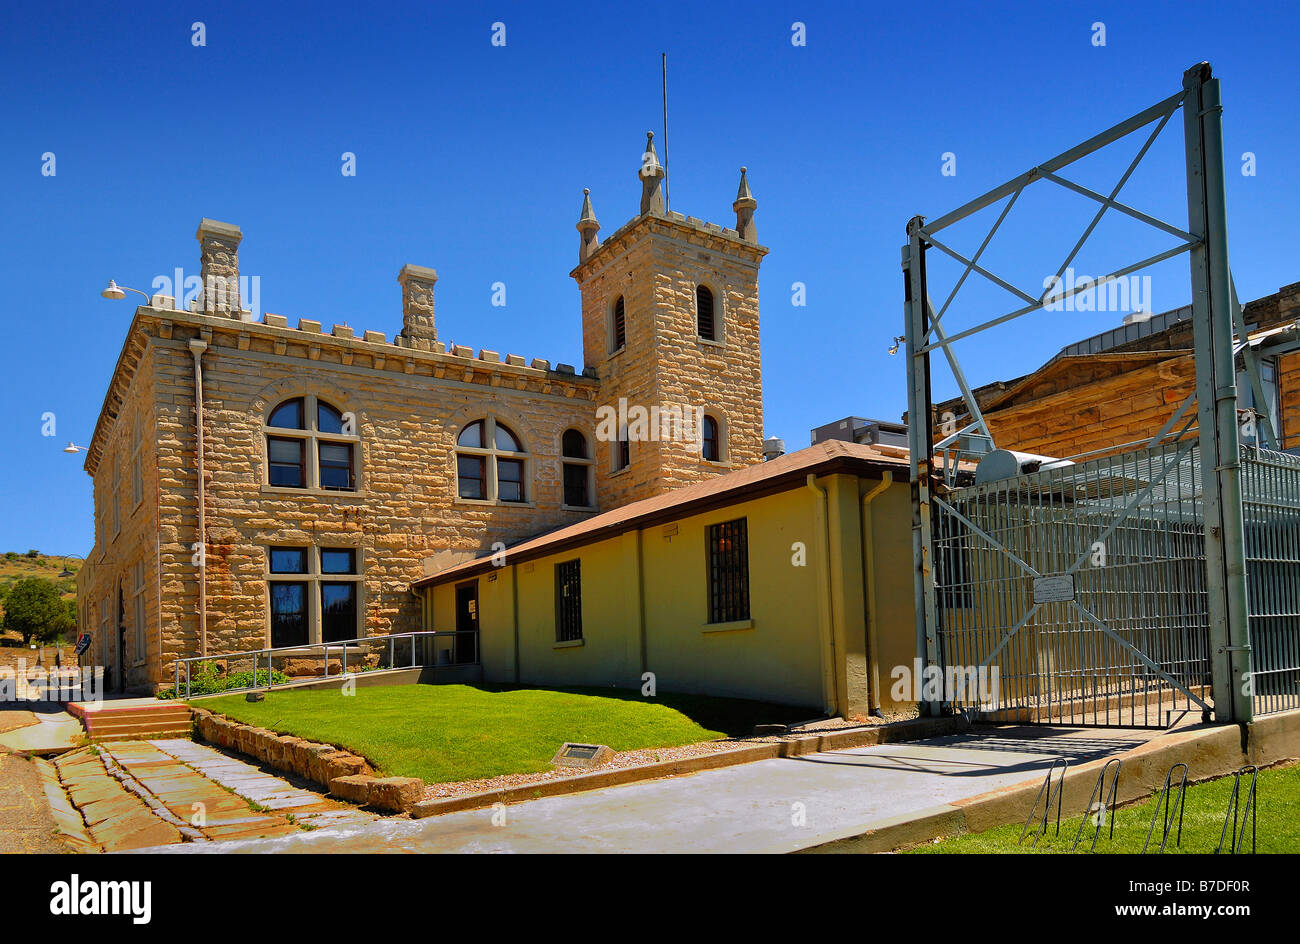 The Main Entrance to The Old Idaho State Penitentiary at Boise, State Capital of Idaho, United States of America - Stock Image